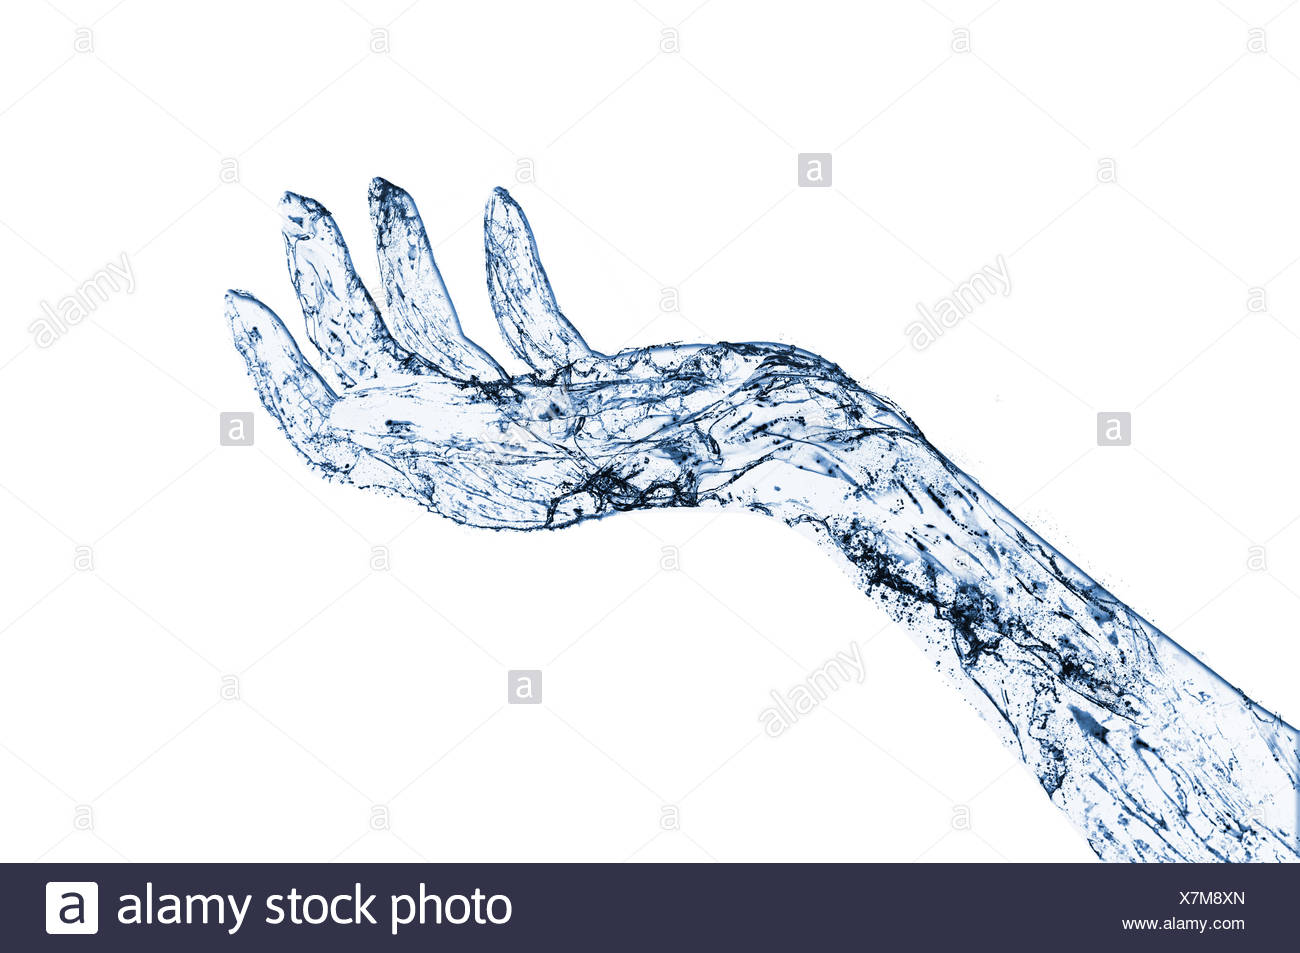 abstract waterhand - Stock Image